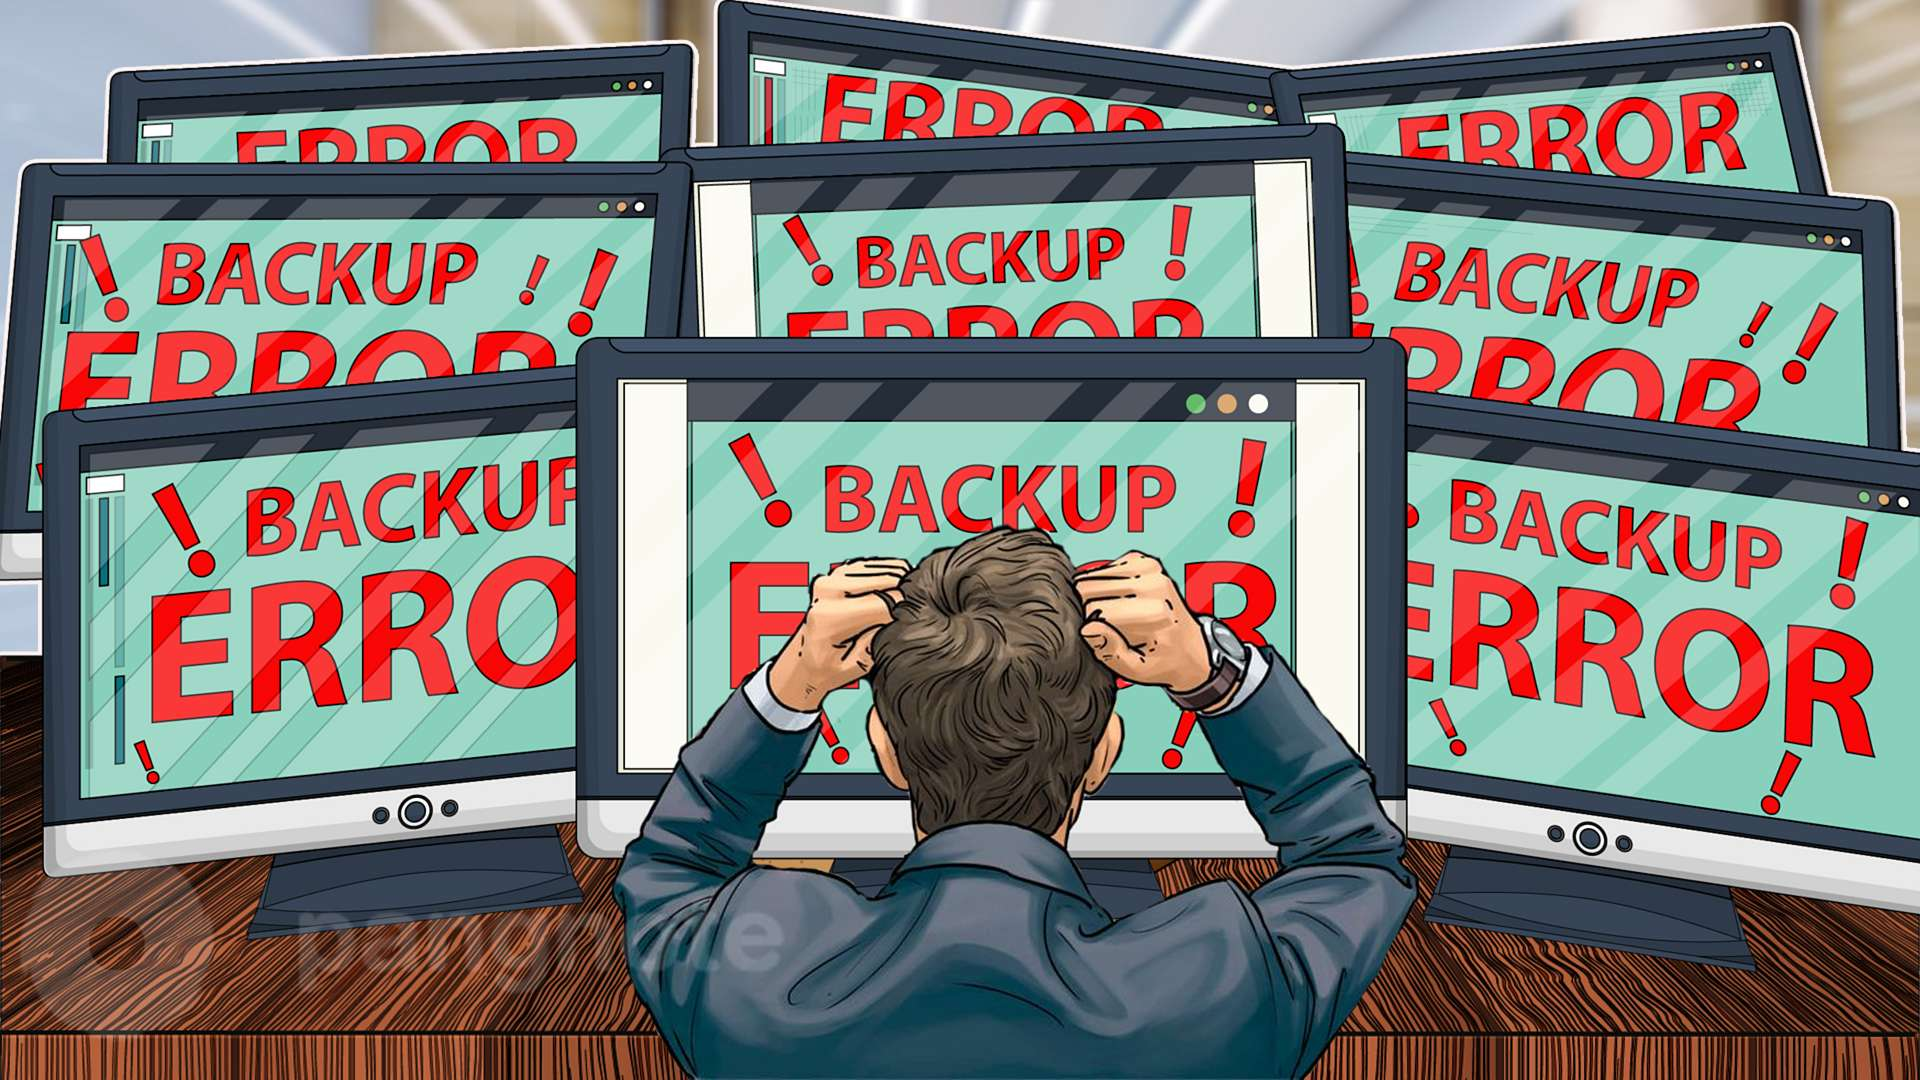 Tips on how to avoid problems with the creation and recovery of backup